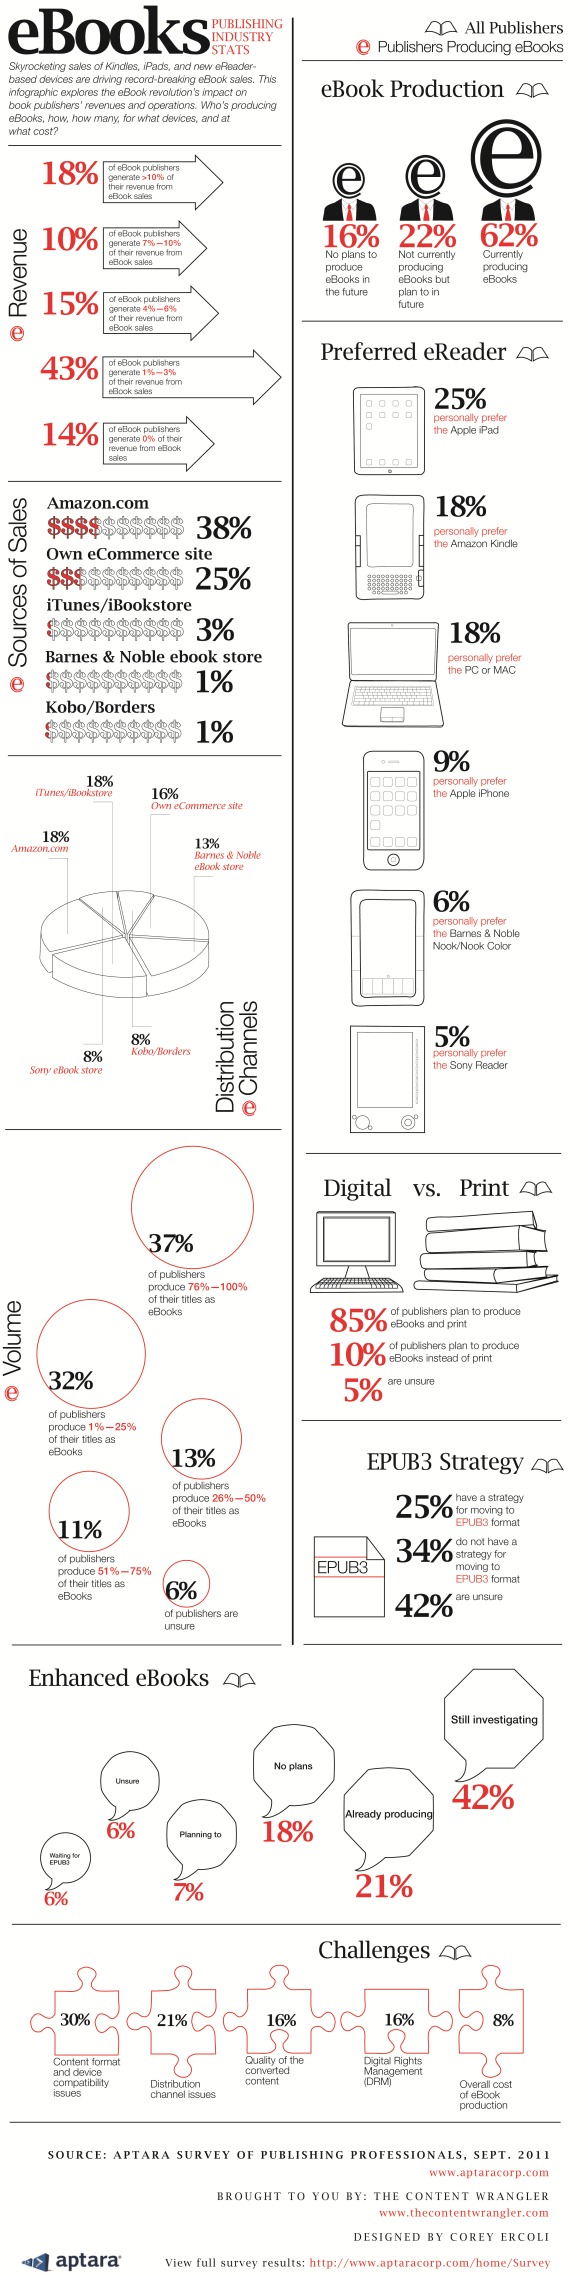 Thinking About Creating an eBook, Look at this Infographic First